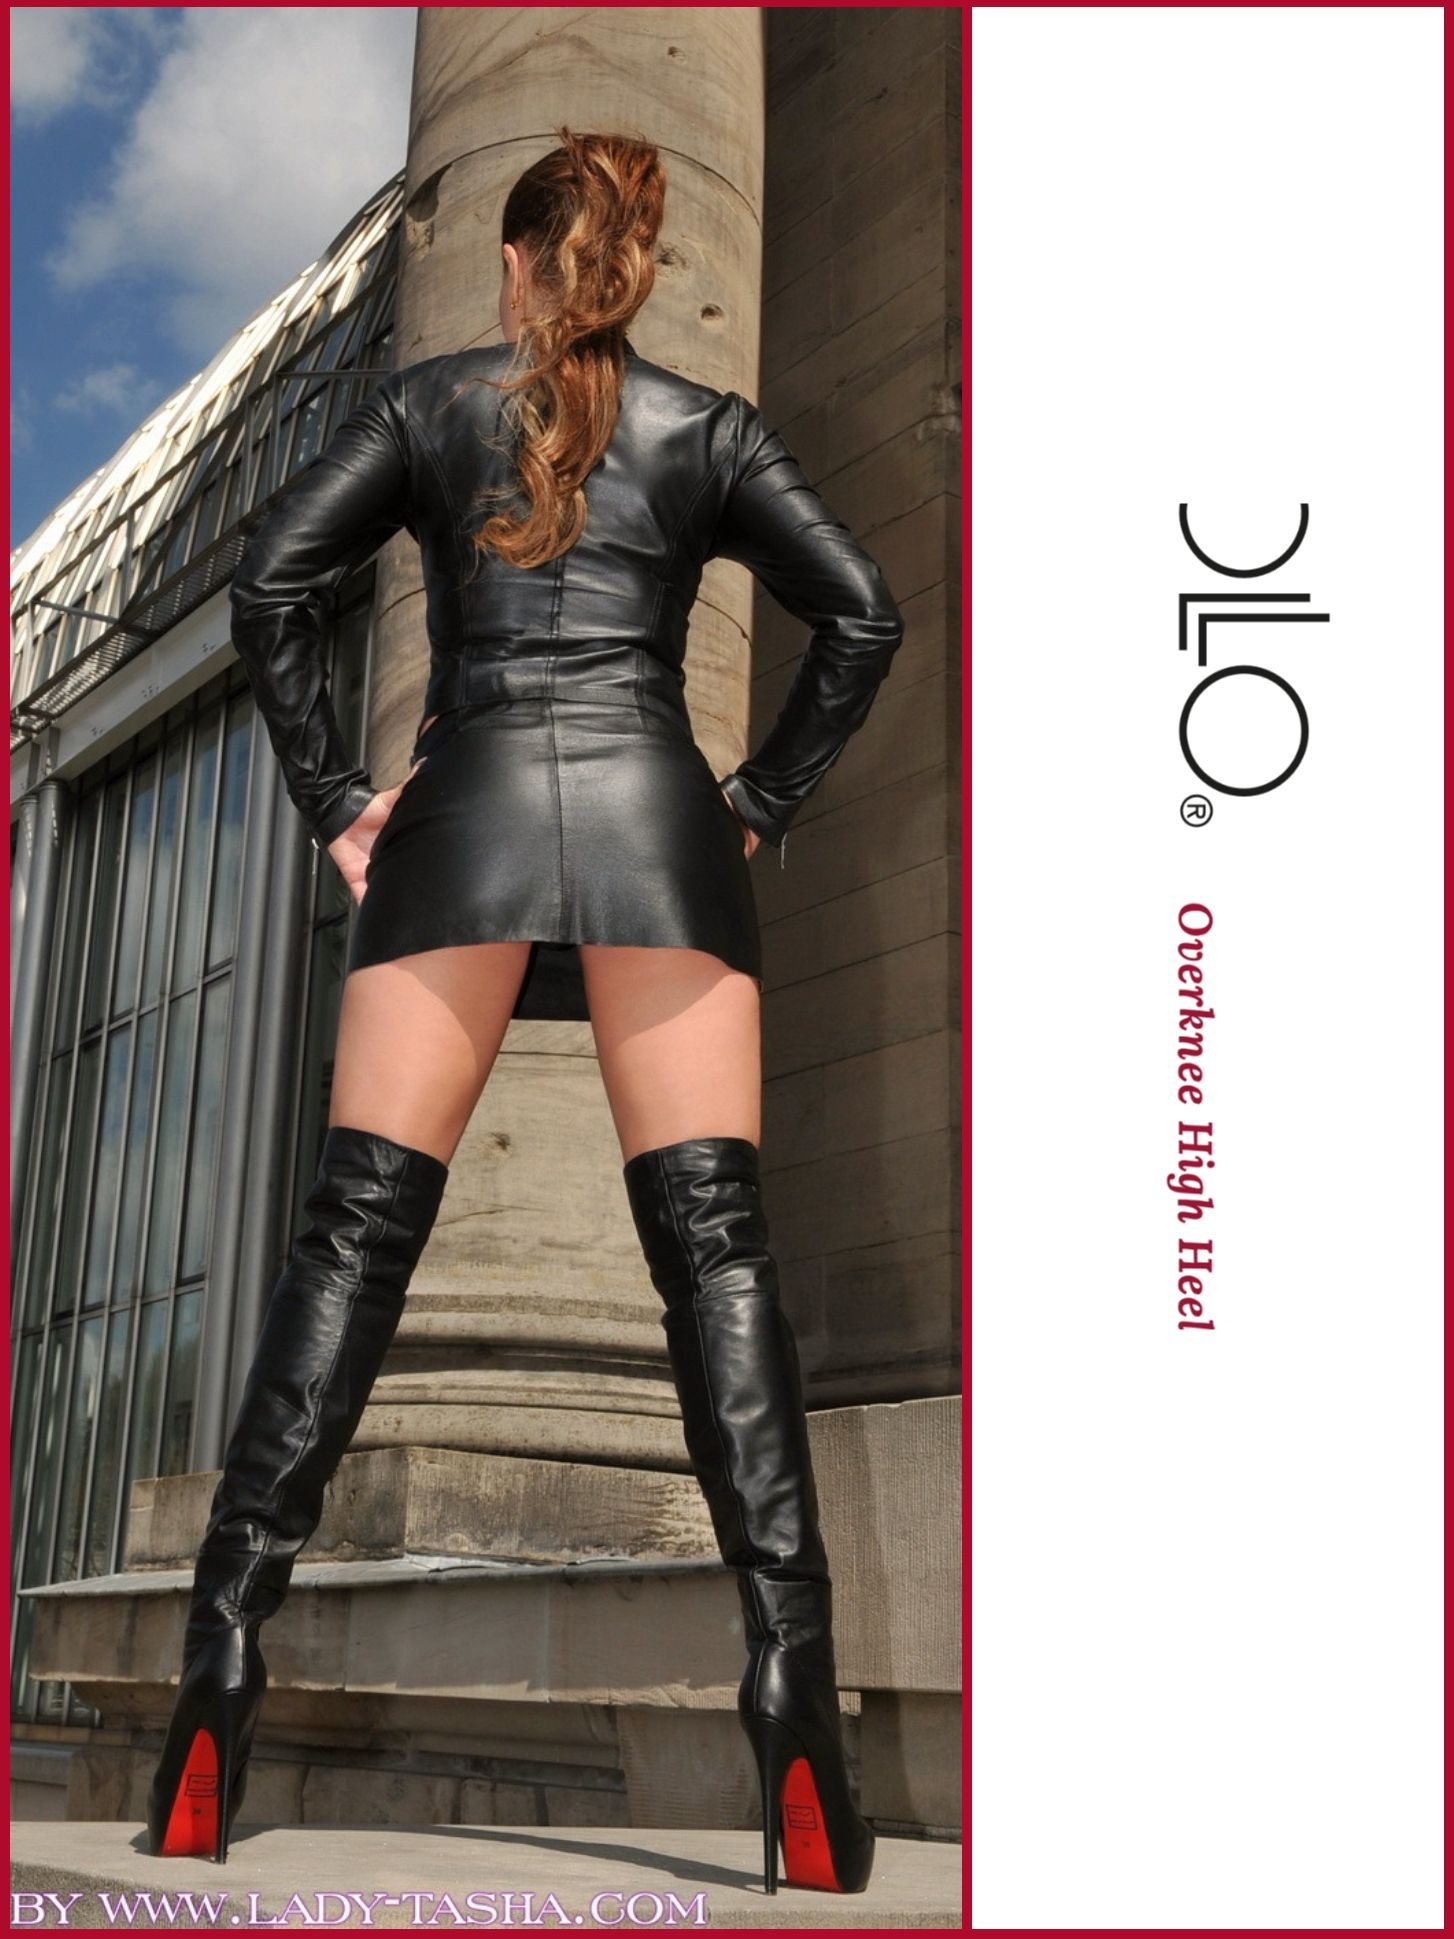 54bc1880b4a AROLLO Overknee Princess • 100% genuine leather • buy online Thigh High  Boots, Over